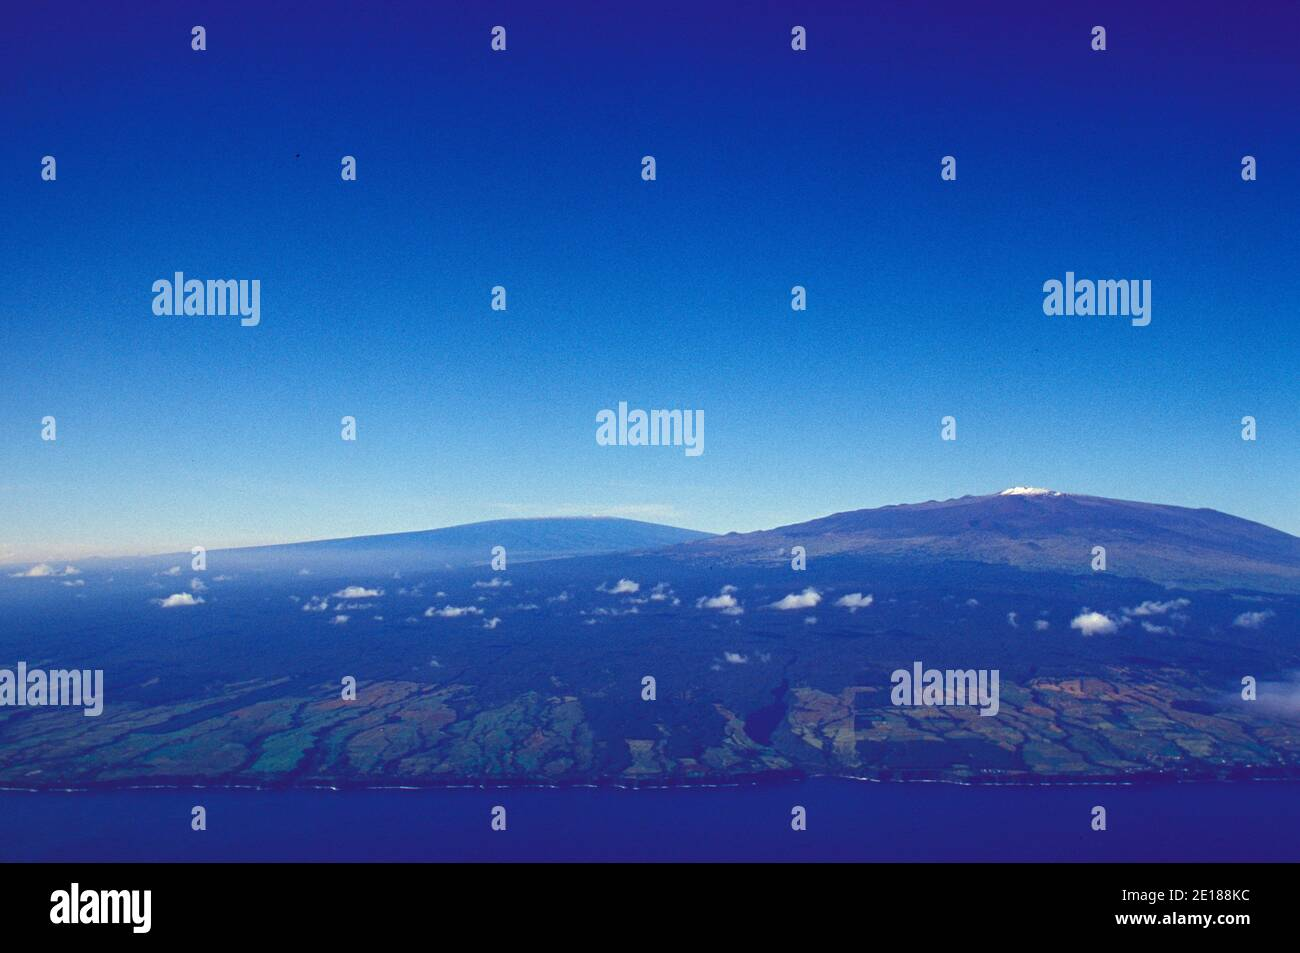 Aerial view of snow capped Mauna Kea with observatories, and Mauna Loa in background. Banque D'Images